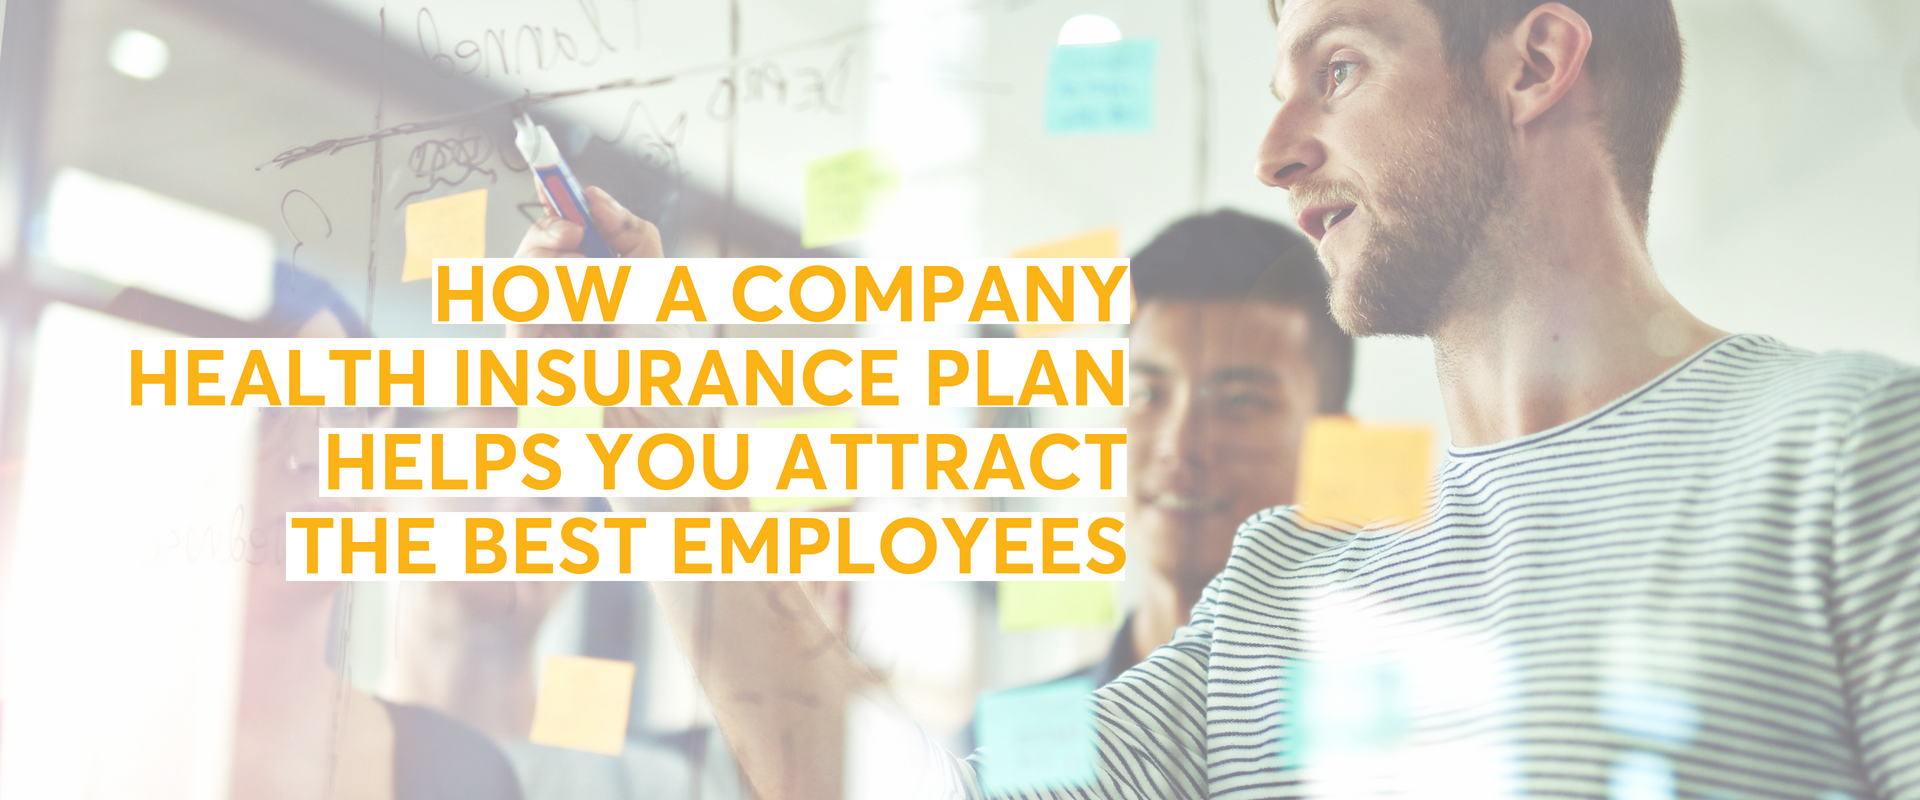 How a Company Health Insurance Plan Helps You Attract the Best Employees